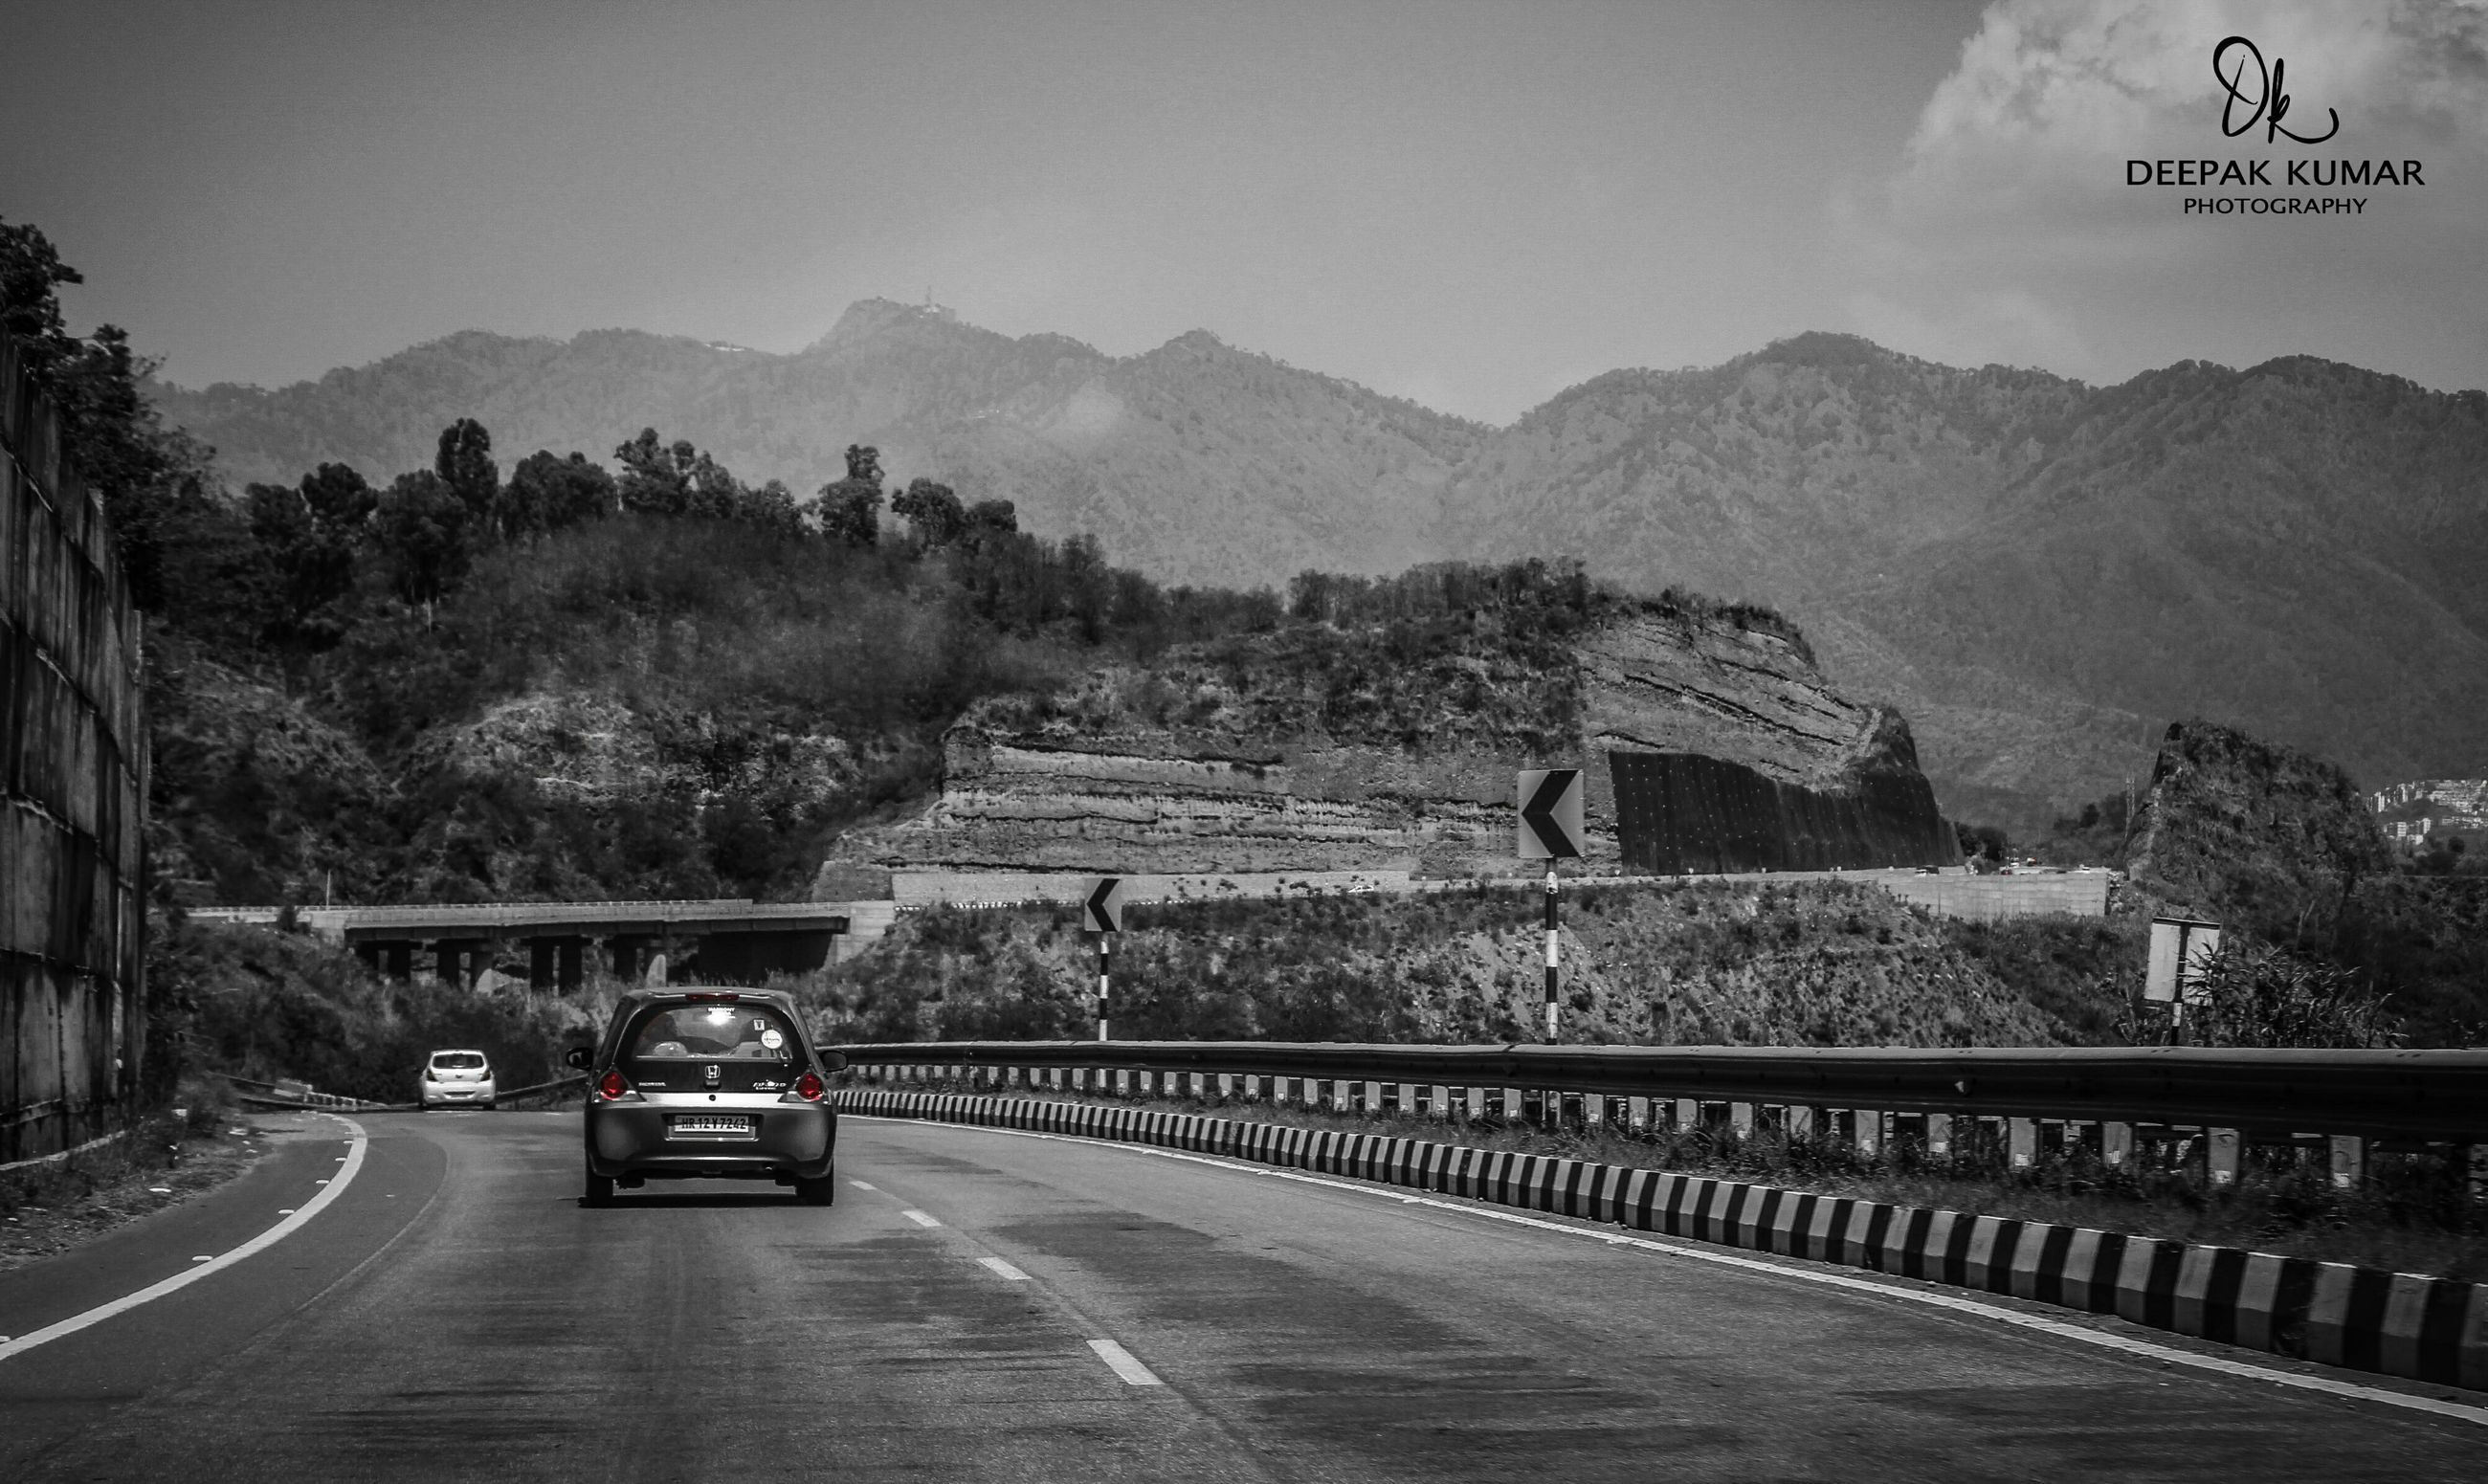 transportation, road, mountain, the way forward, car, road marking, land vehicle, mode of transport, street, mountain range, sky, diminishing perspective, clear sky, vanishing point, tree, built structure, country road, architecture, outdoors, highway